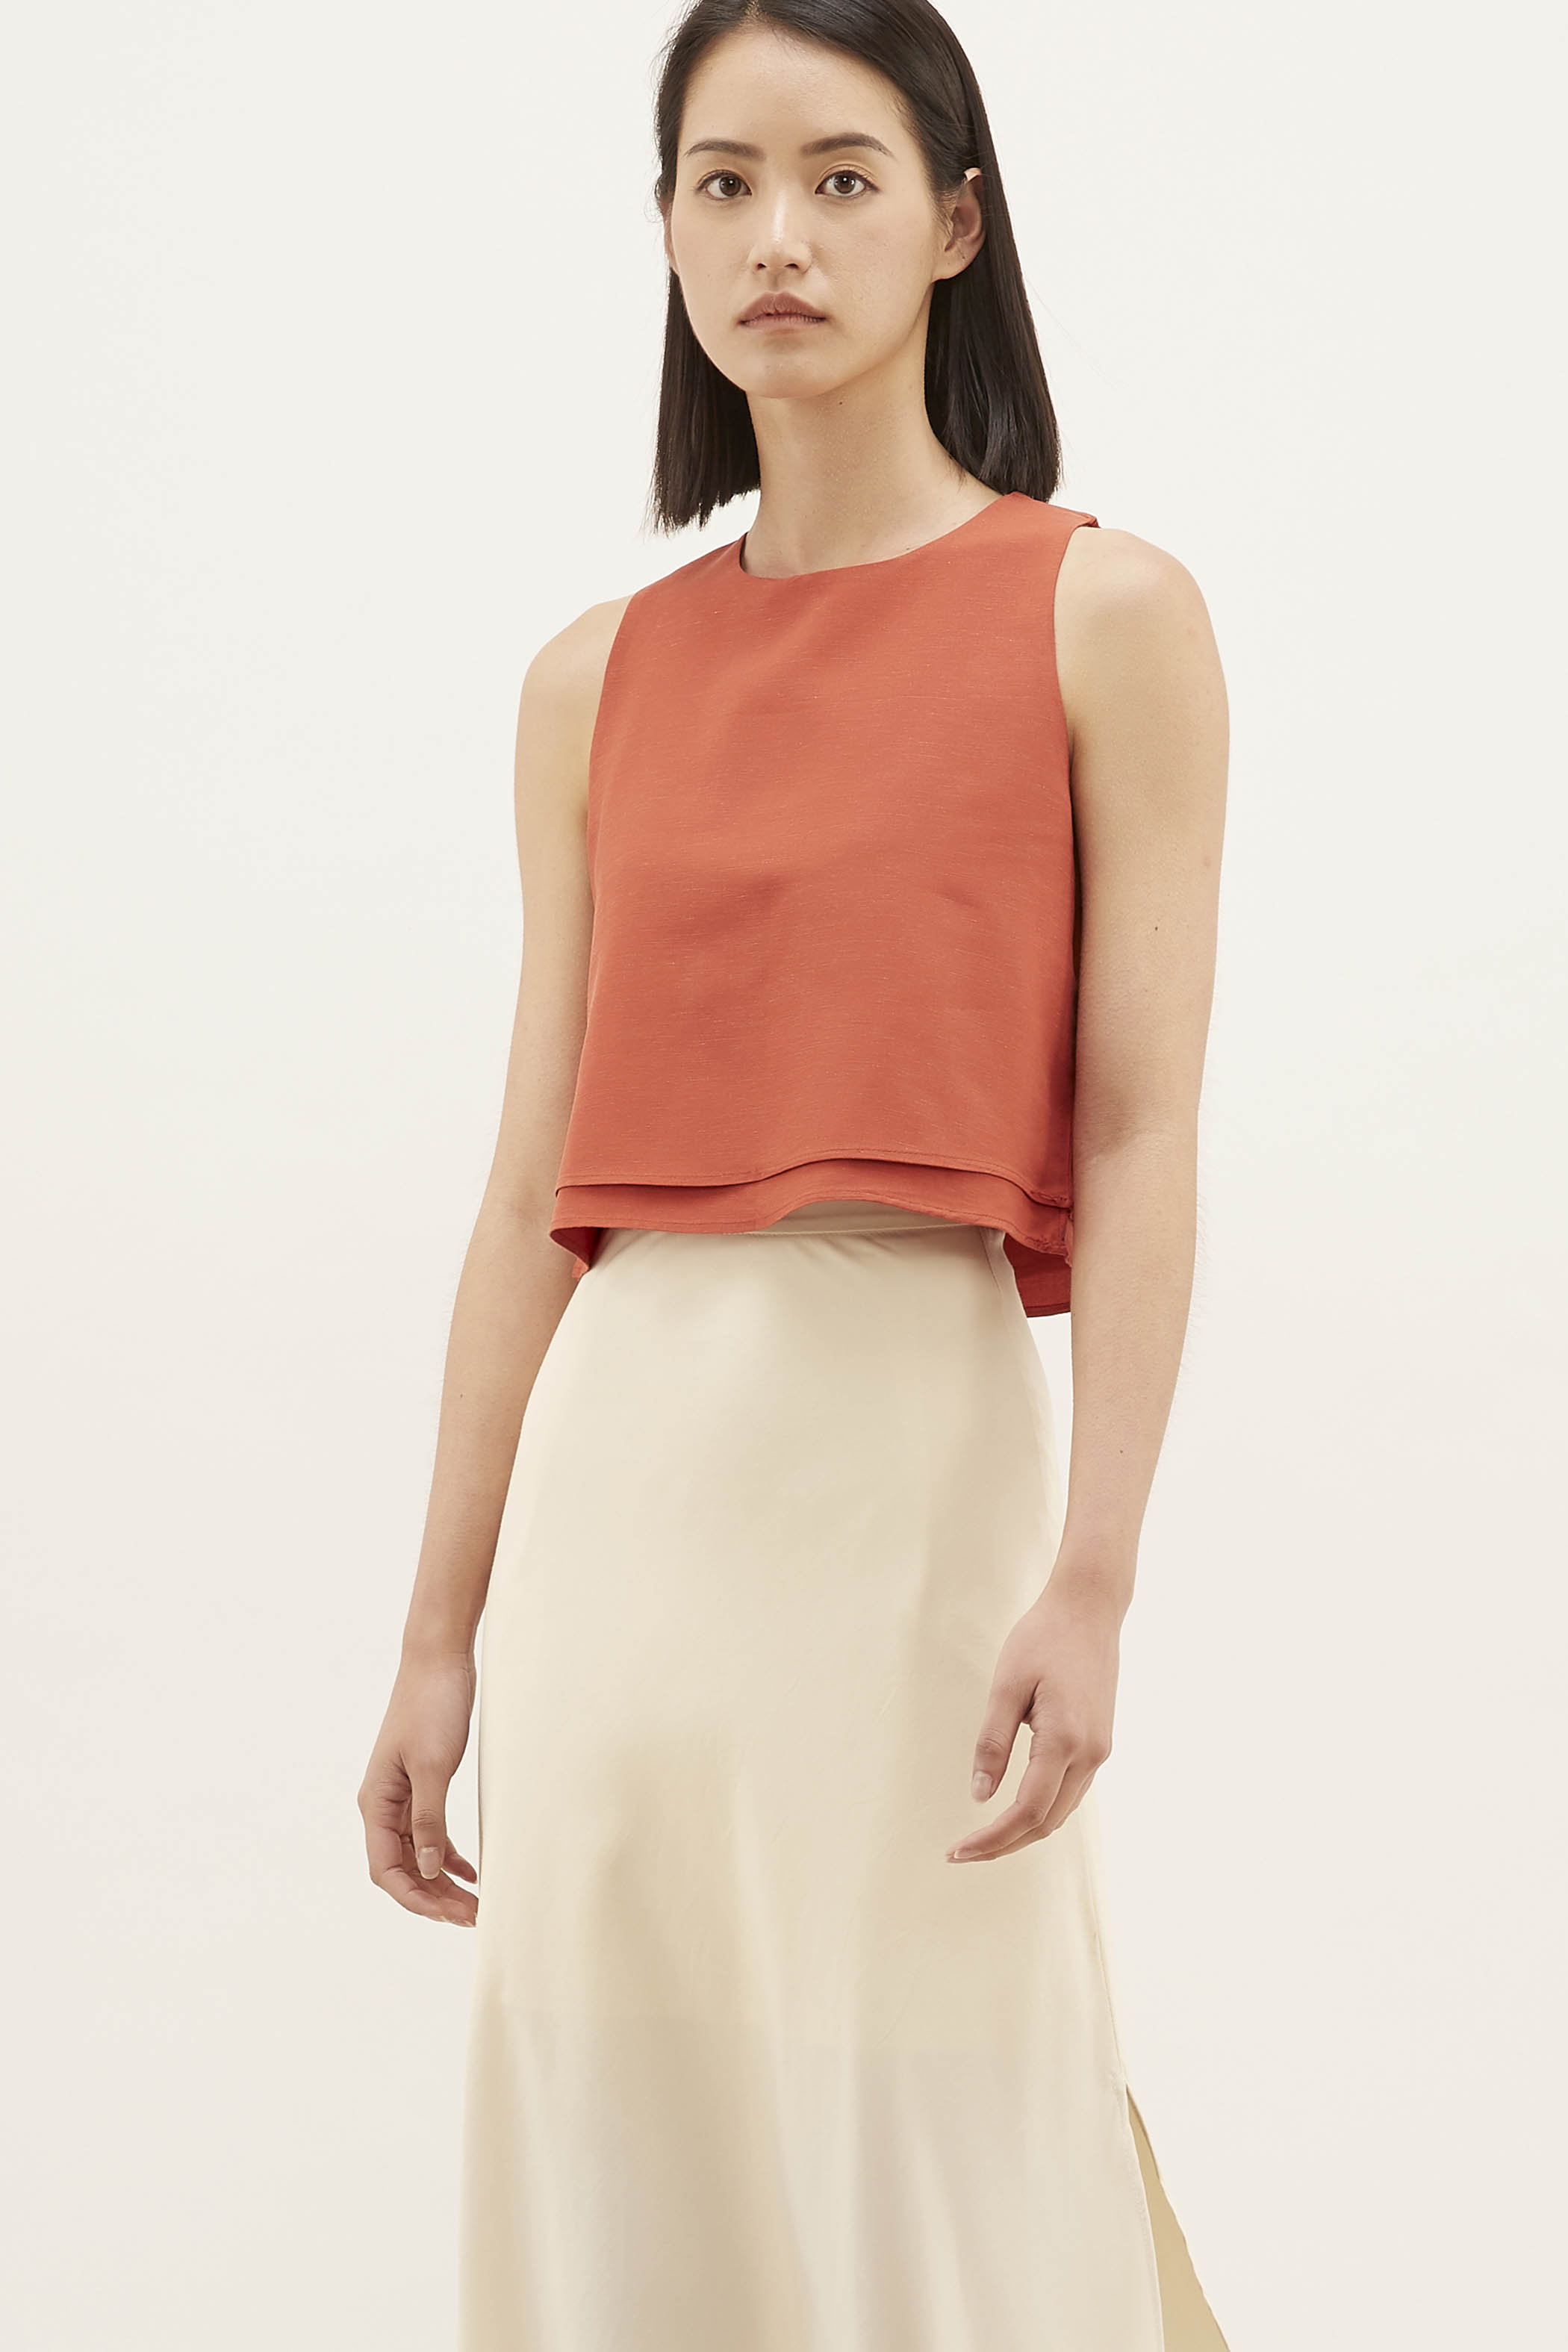 Yelna Layered Crop Top